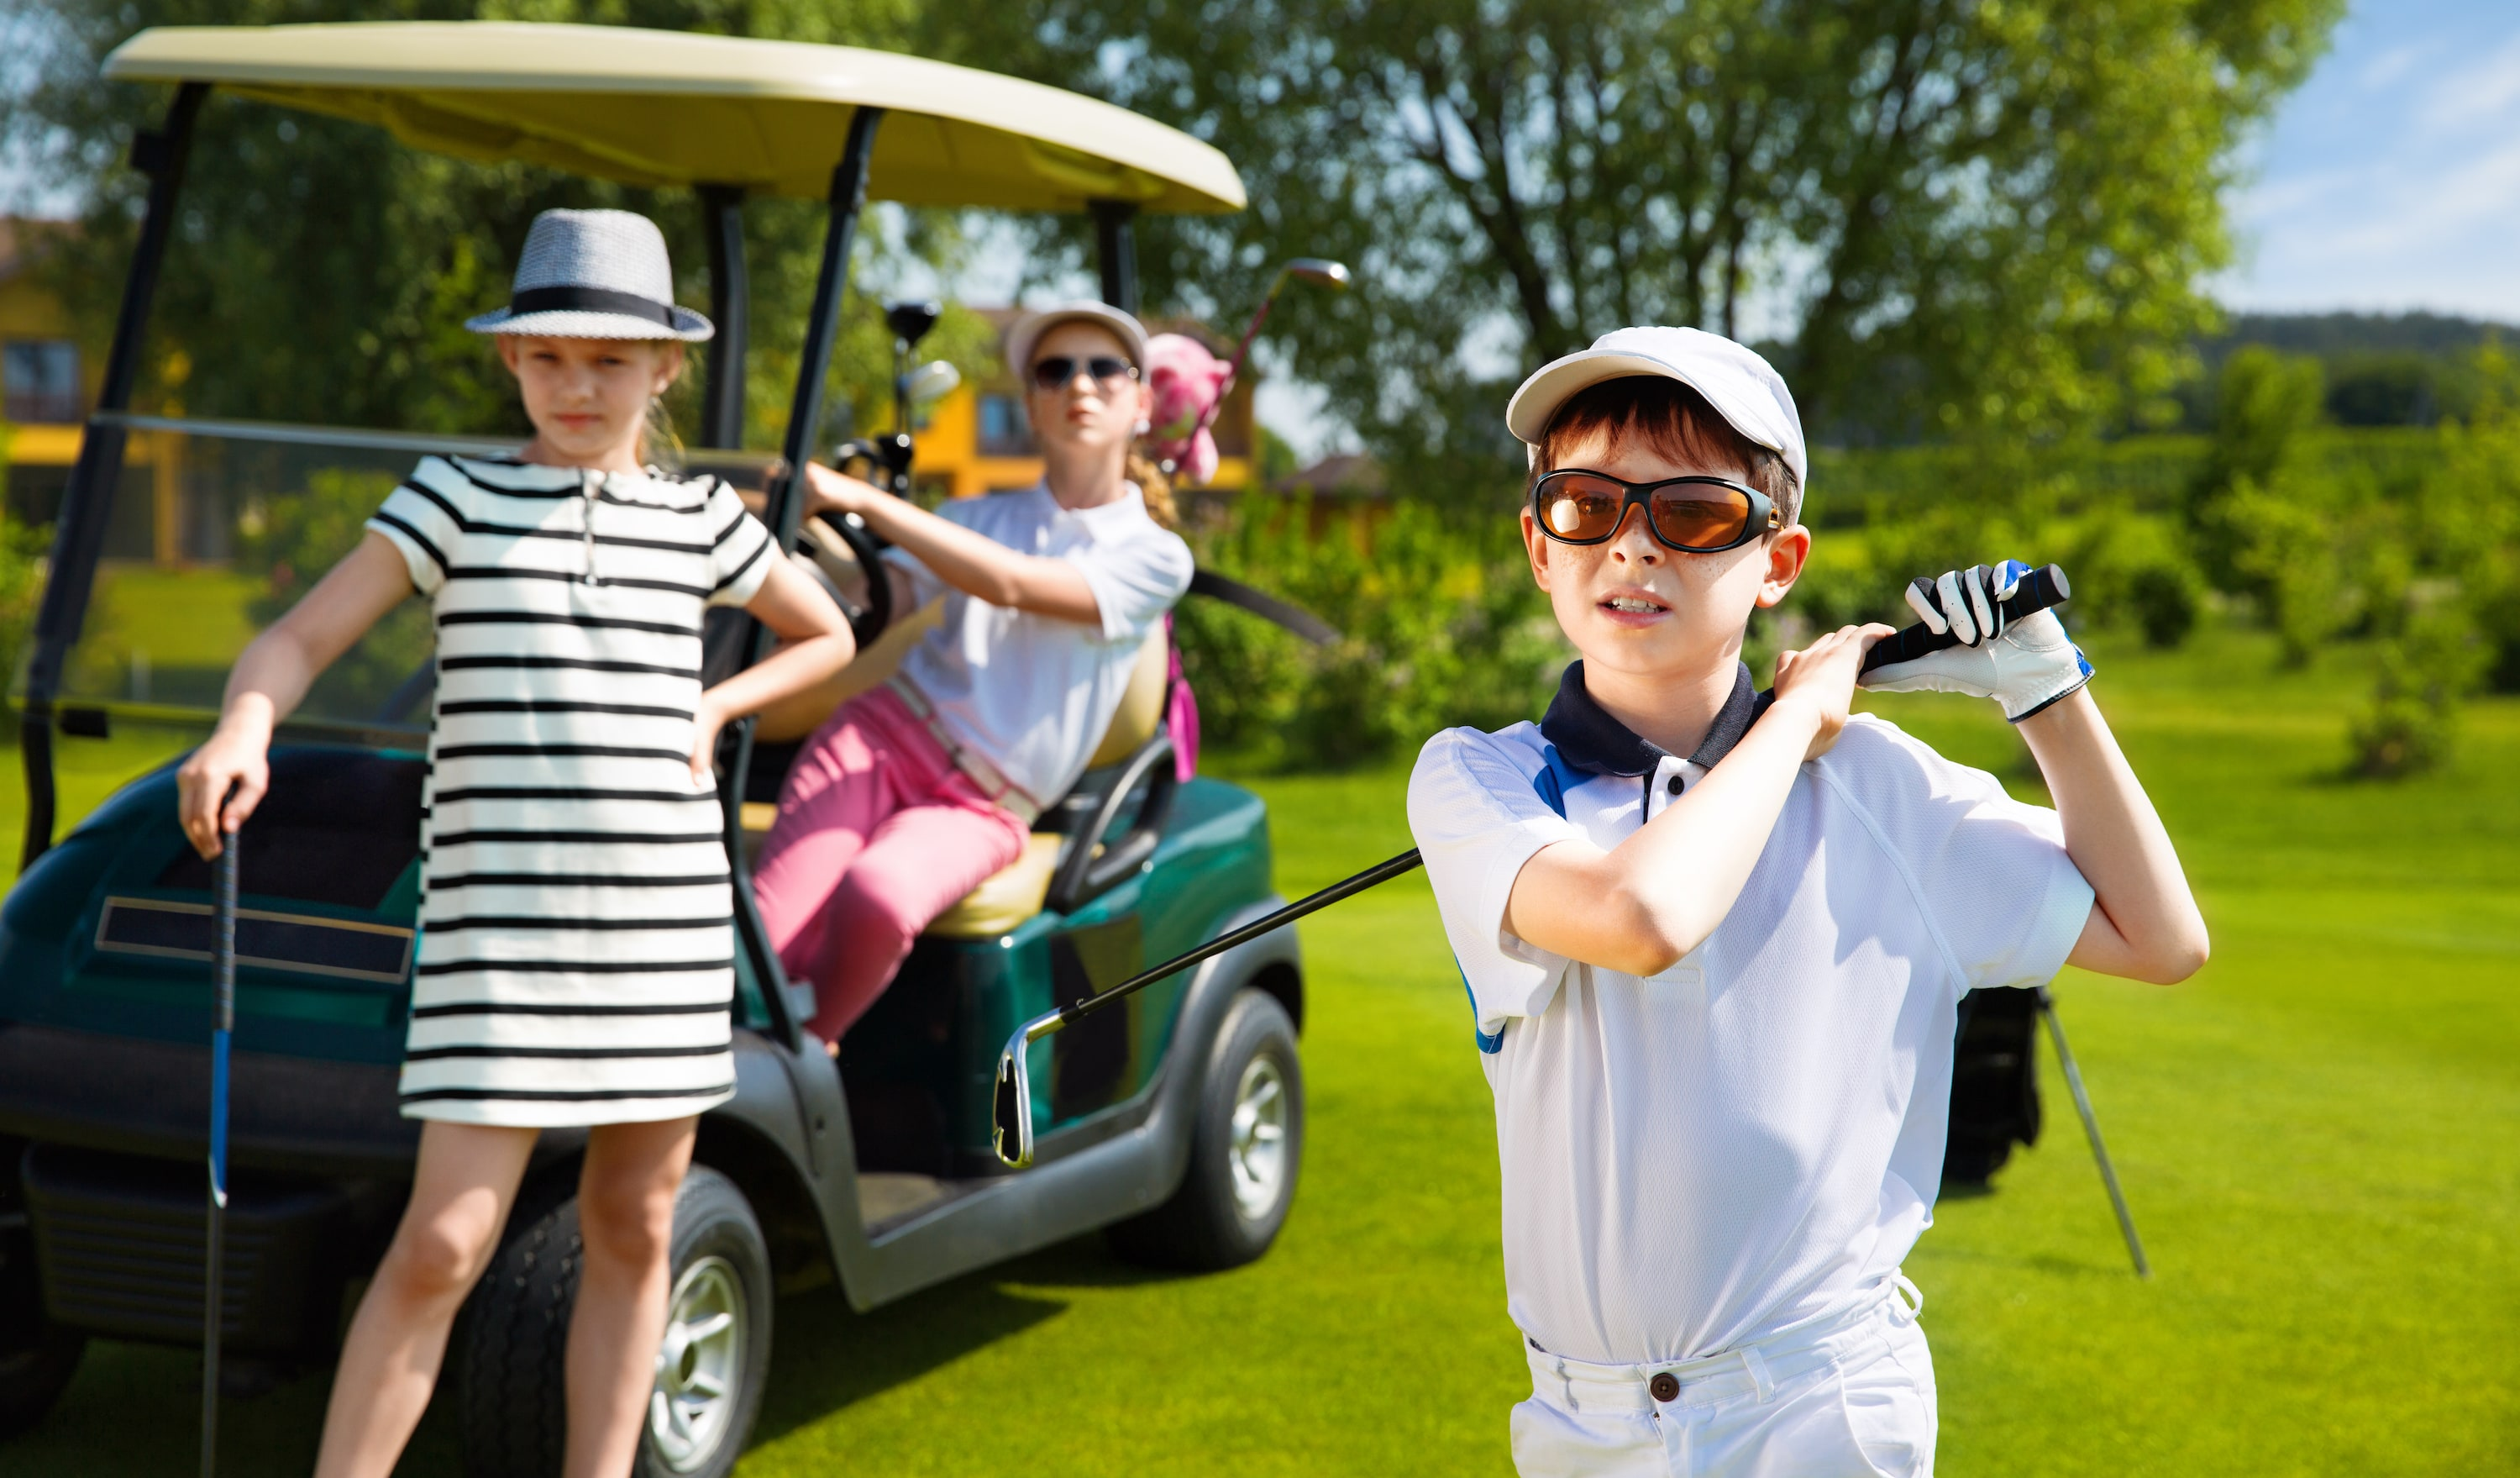 Want to Get Your Child into Golf? A Guide to Introducing Youngsters to The Game